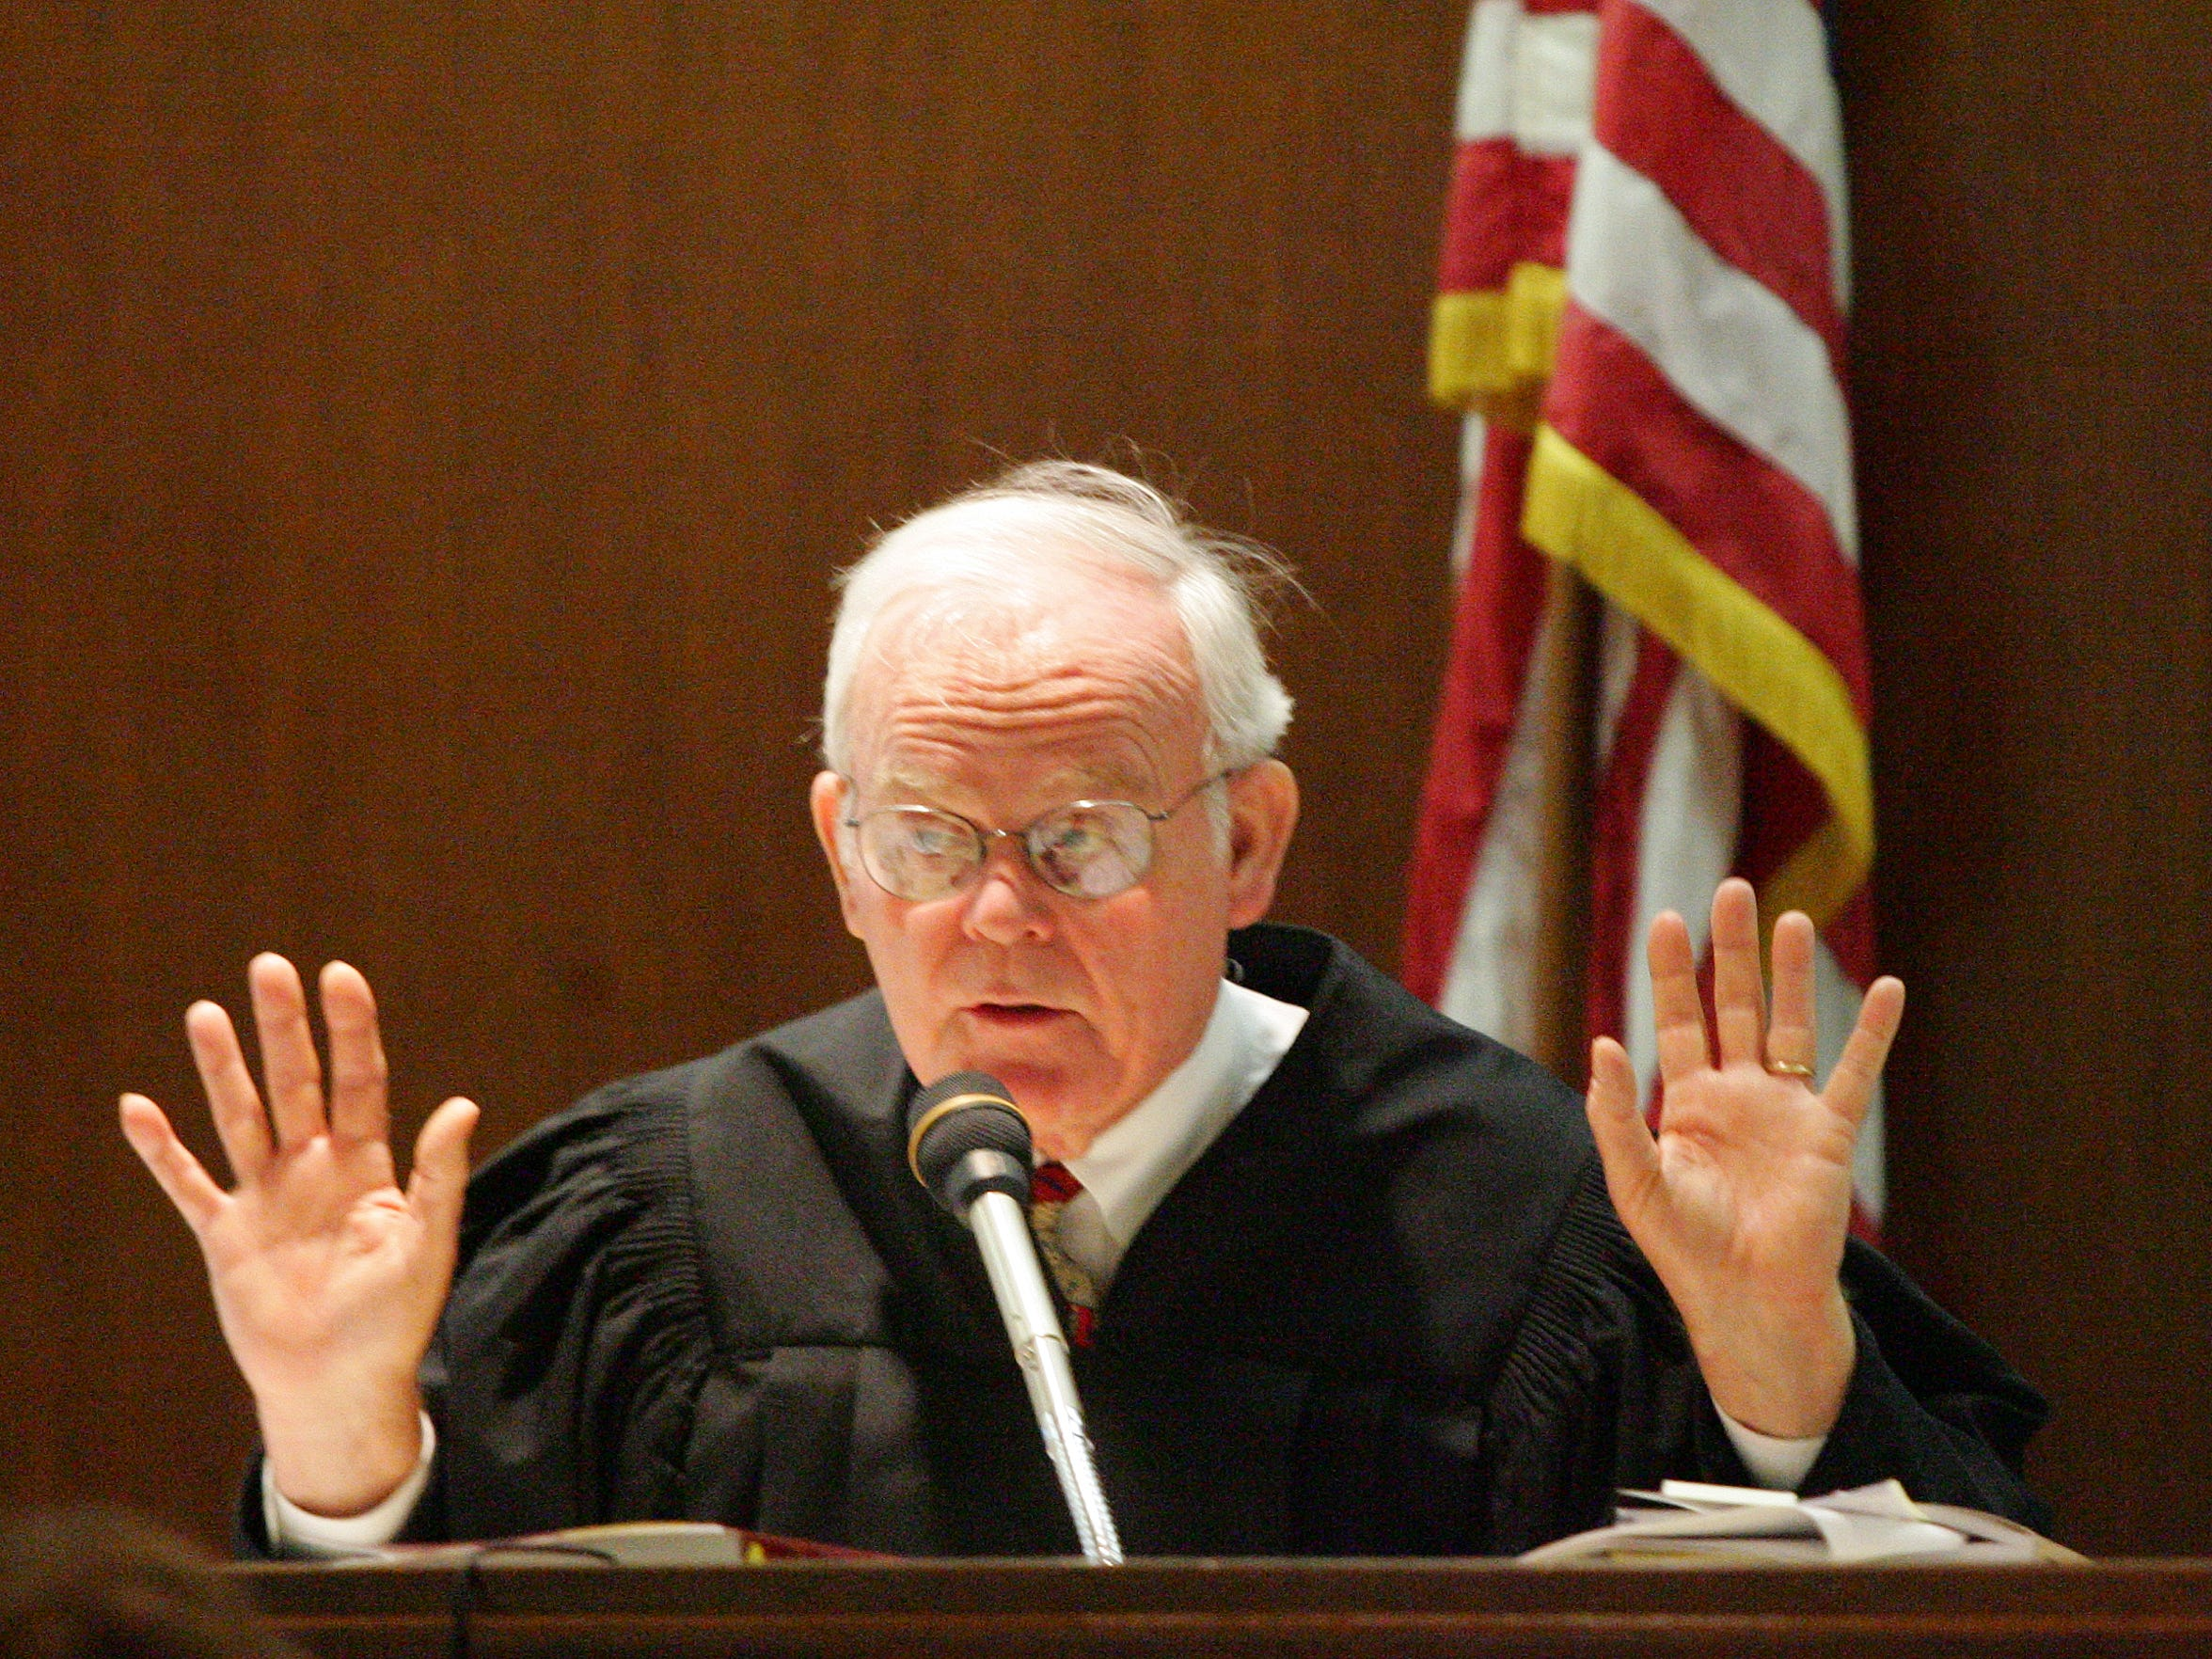 Judge David B. Downing, seen here in 2011 during the Warm Sands case, allegedly said he was unwilling to touch motions from Kaushal Niroula, an HIV positive murder defendant, because they came in licked envelopes.